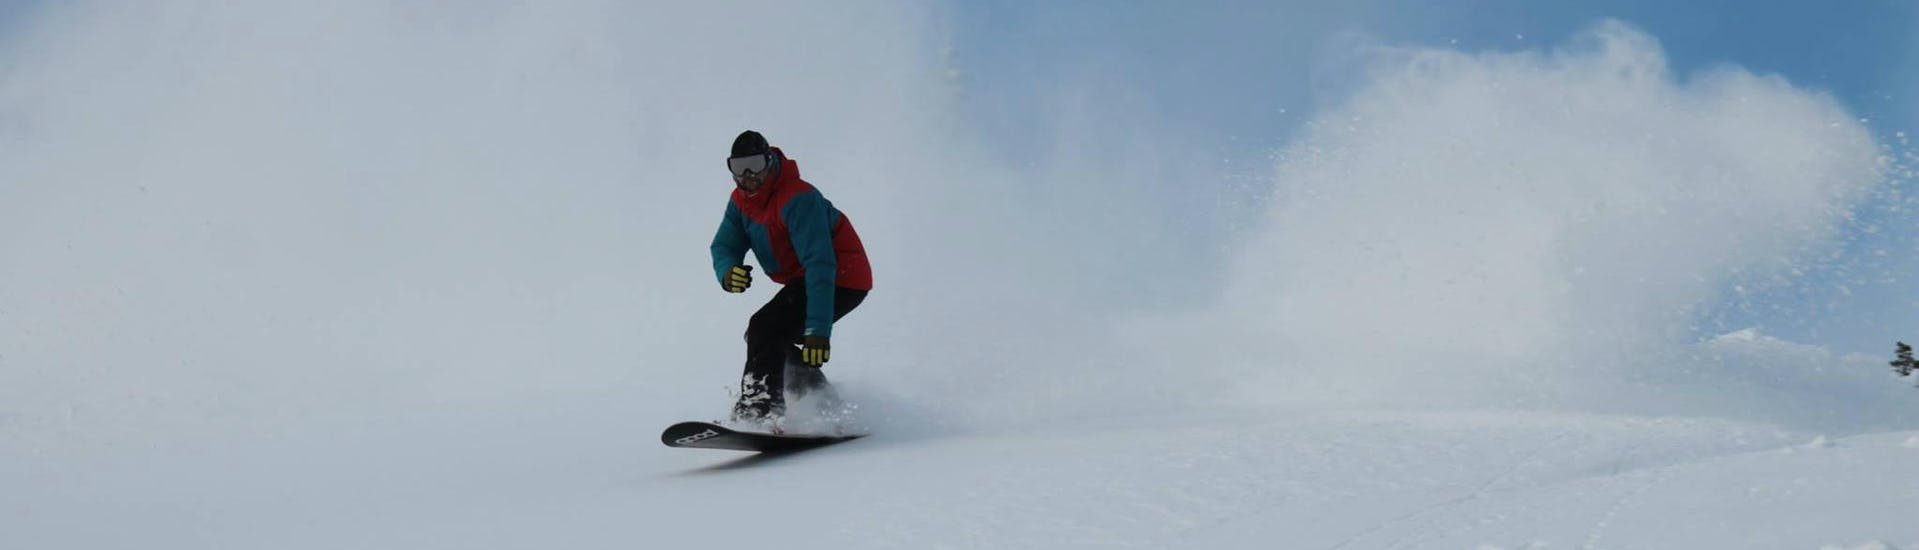 Snowboard Lessons for Kids & Adults - Advanced